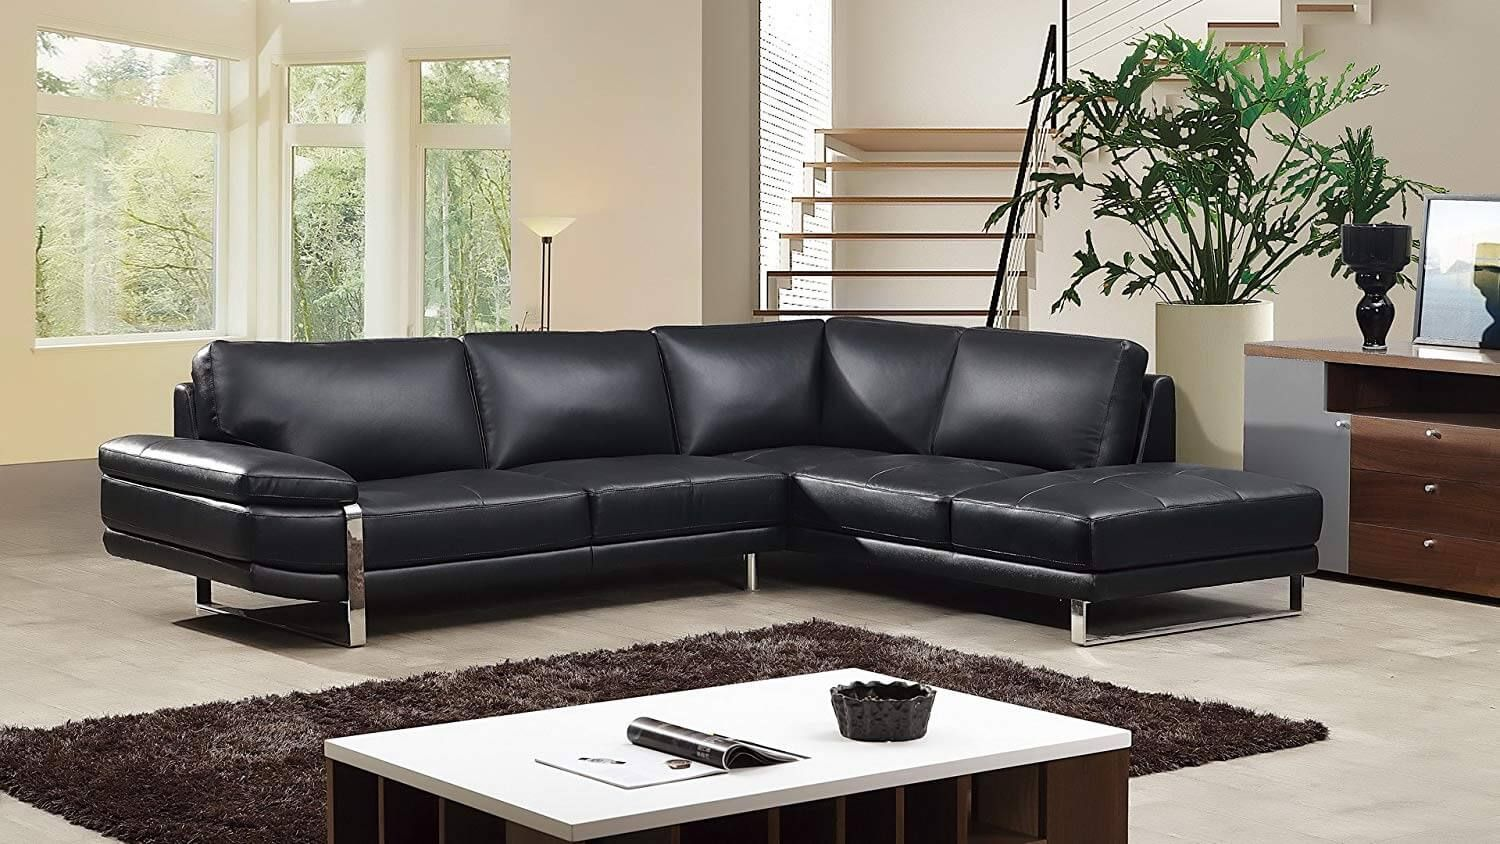 Embrace Your Home With Best Leather Sofa Brands With Images